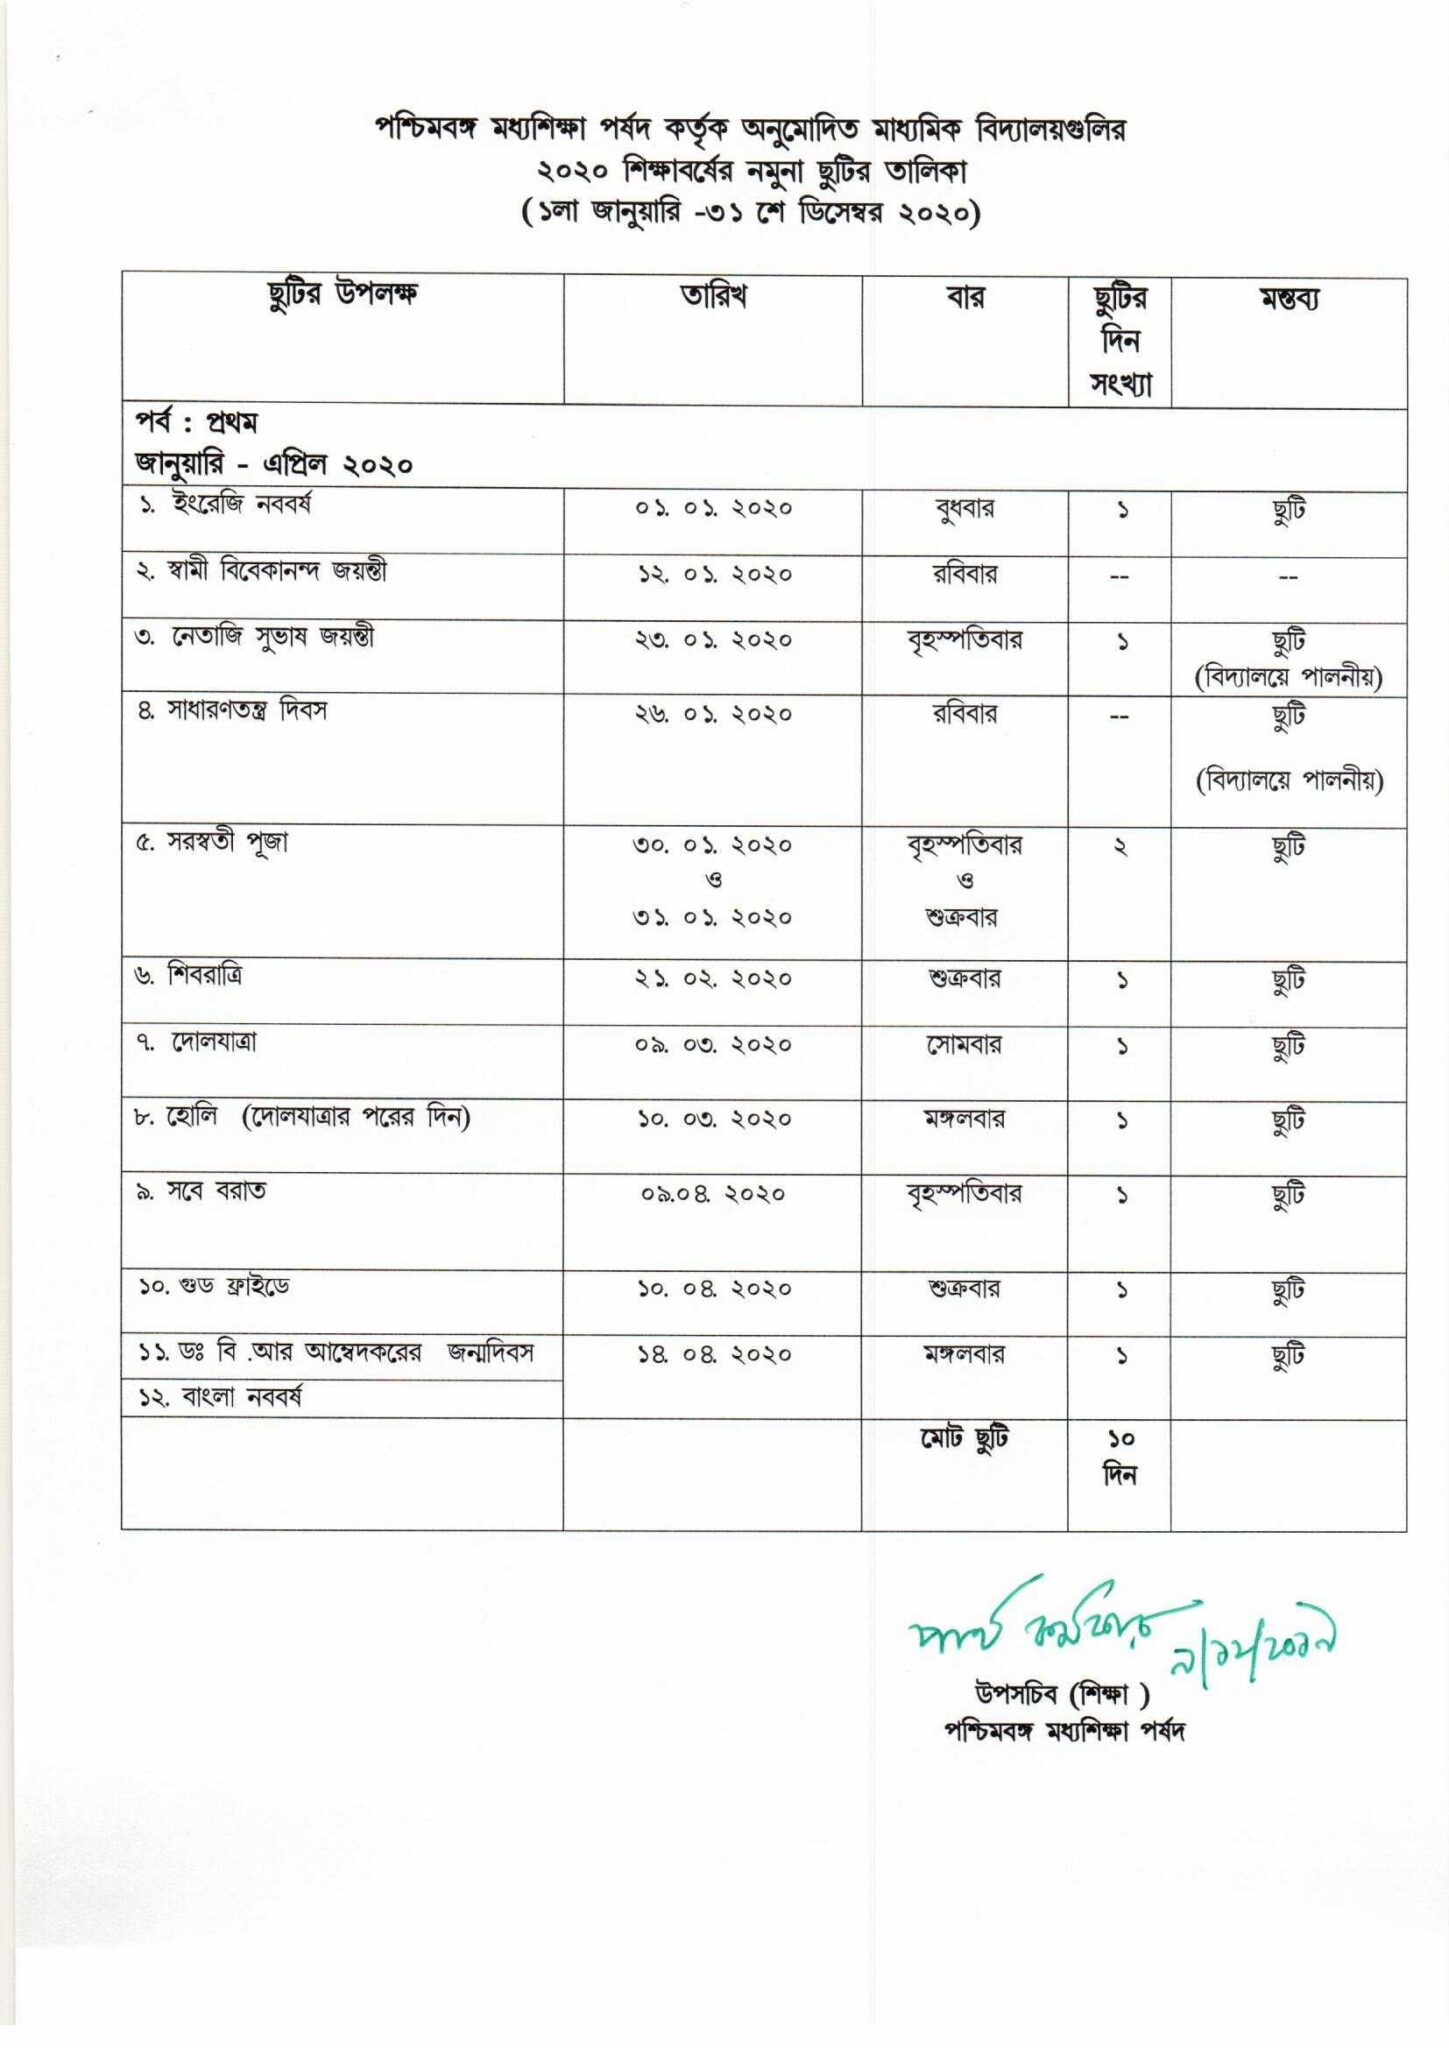 Holiday List of West Bengal Board of Secondary Education 2020